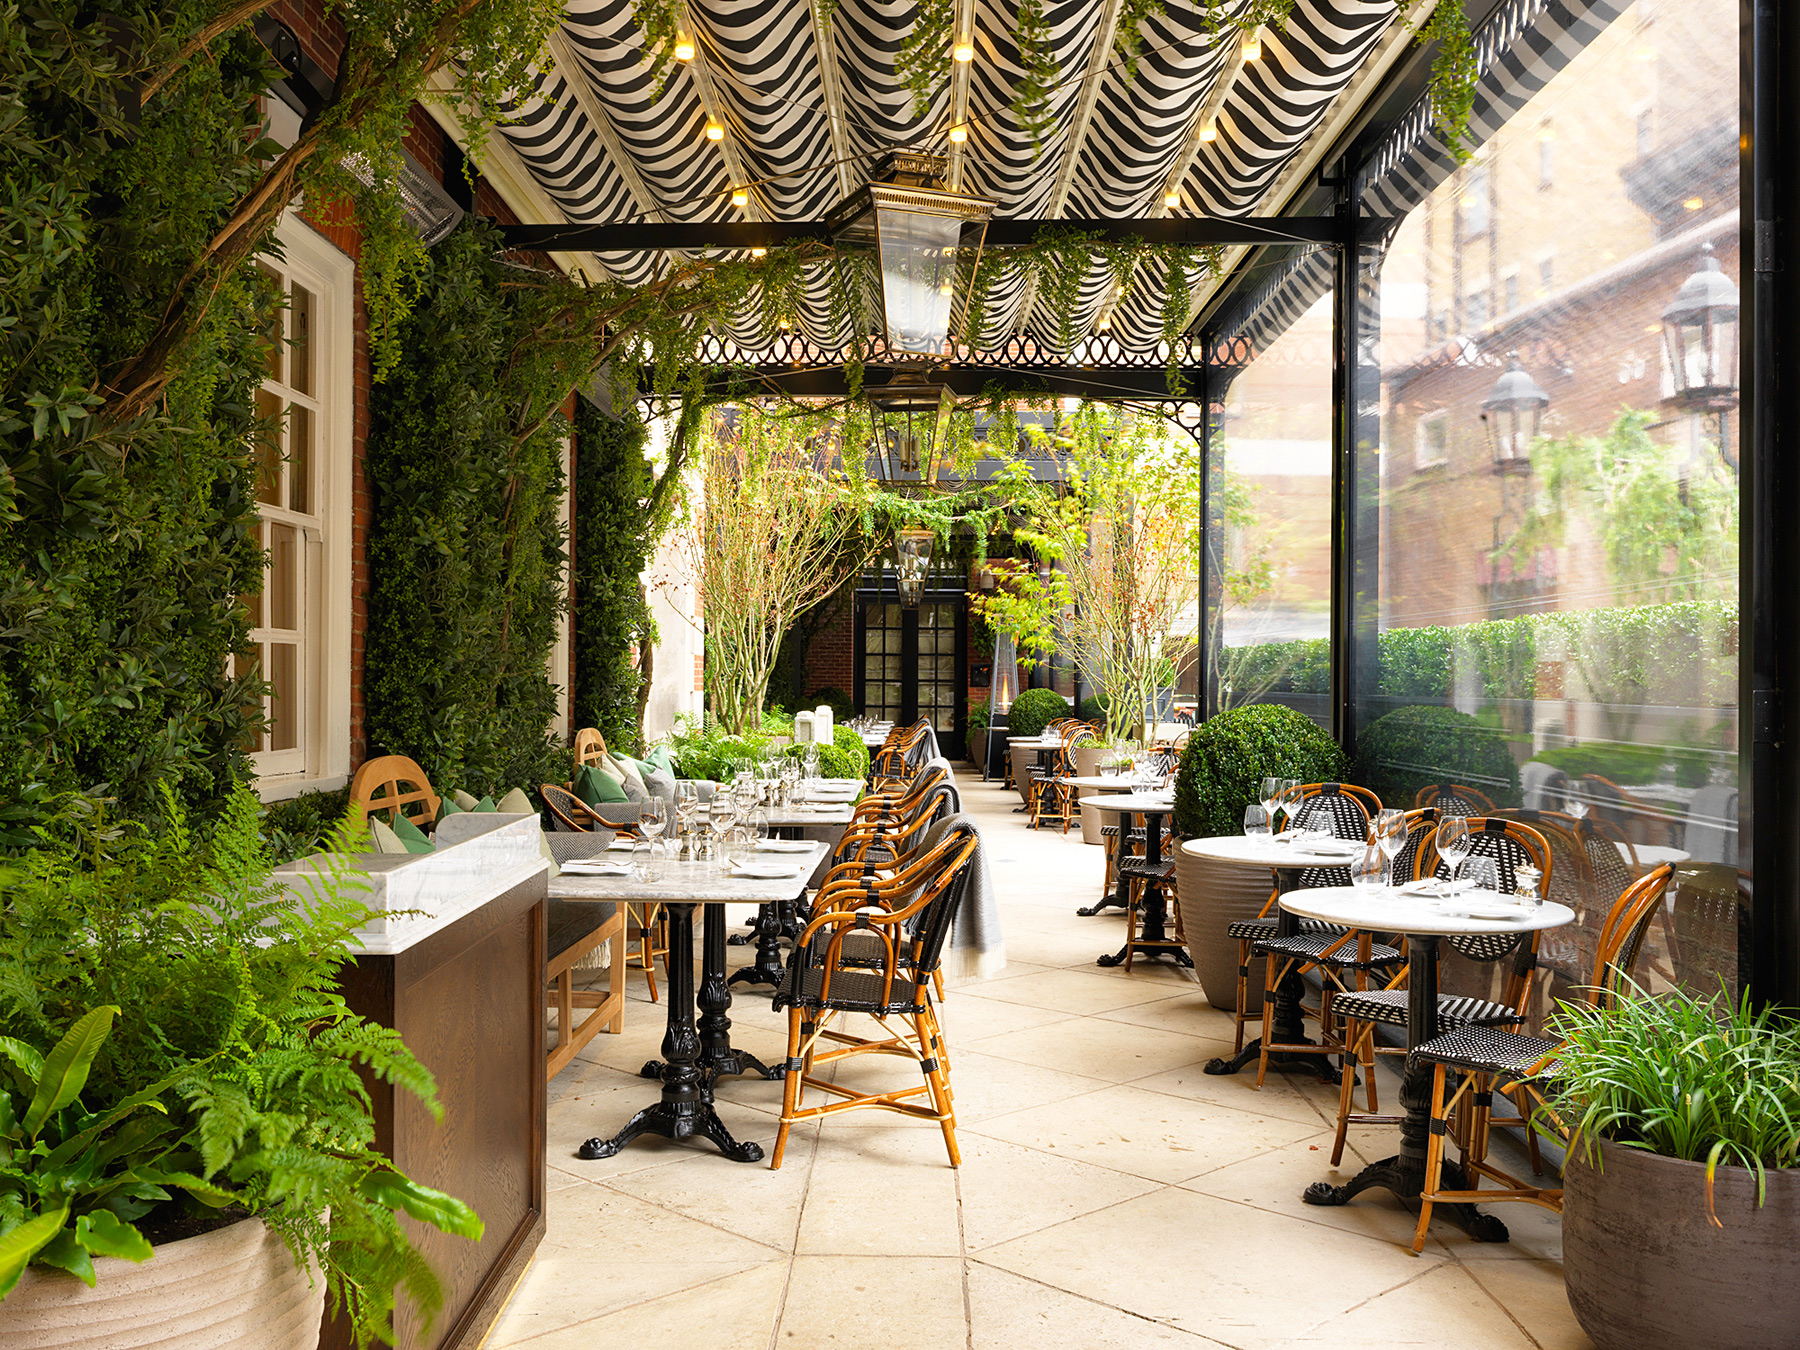 Dalloway terrace at the bloomsbury london for In the terrace